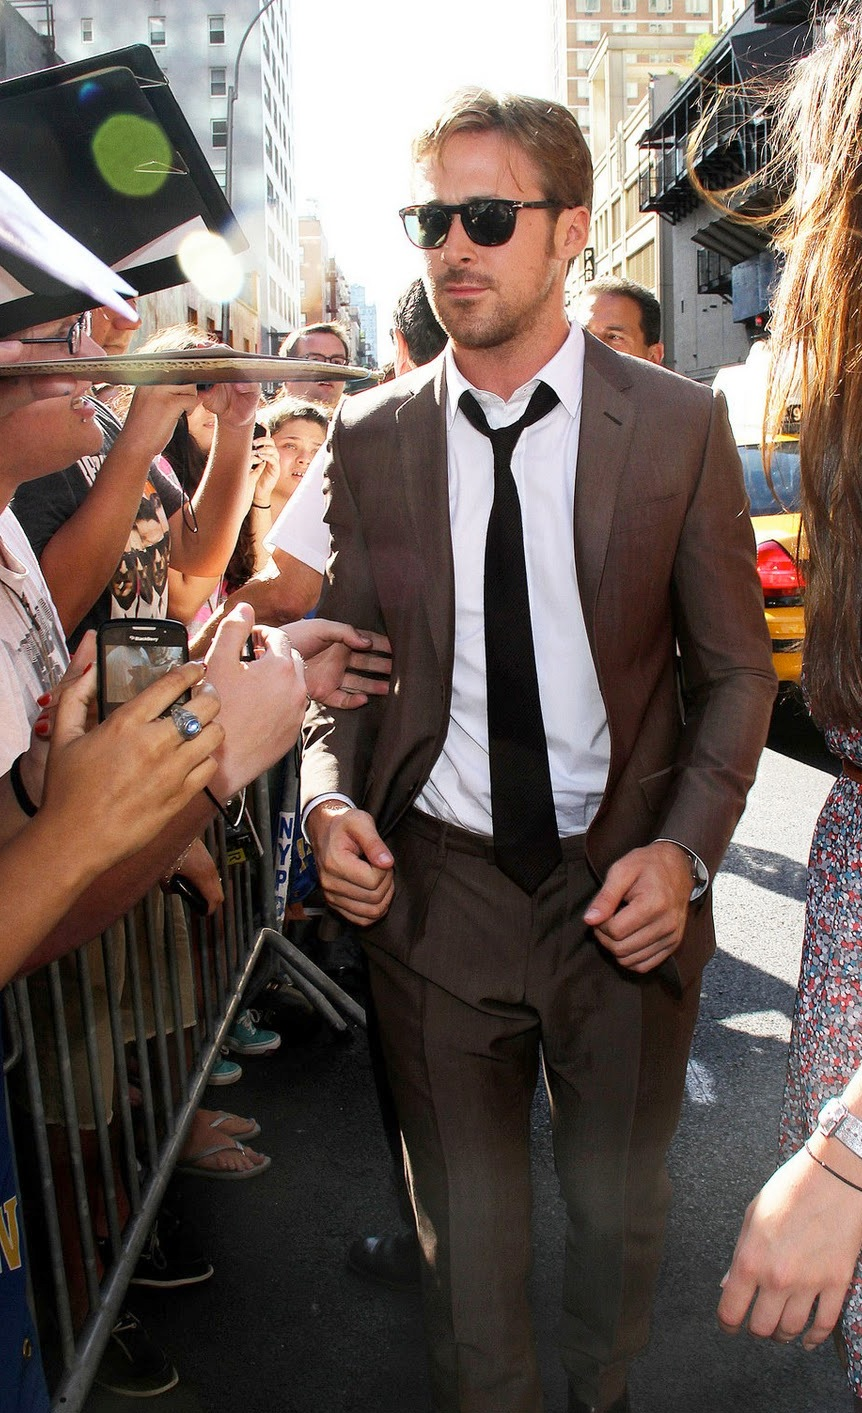 ryan_gosling_brown_suit_white.jpg